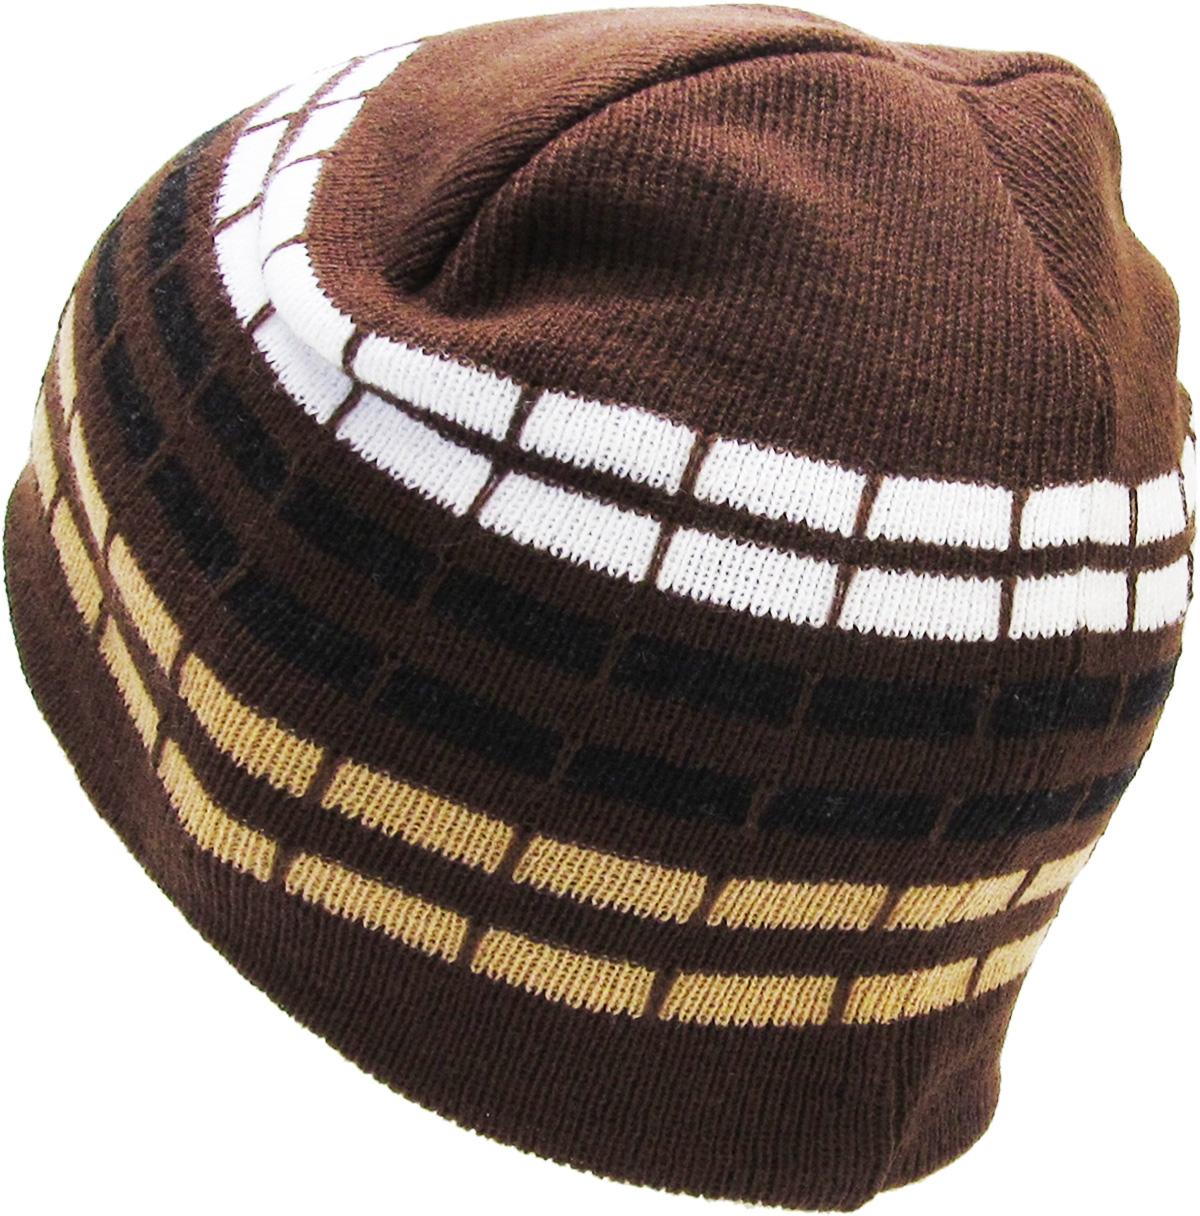 d5b0e8b134437 KBETHOS - Dark Gray Dotted Stripes Short Beanie Skull Cap Solid Color Men  Women Winter Ski Hat - Walmart.com